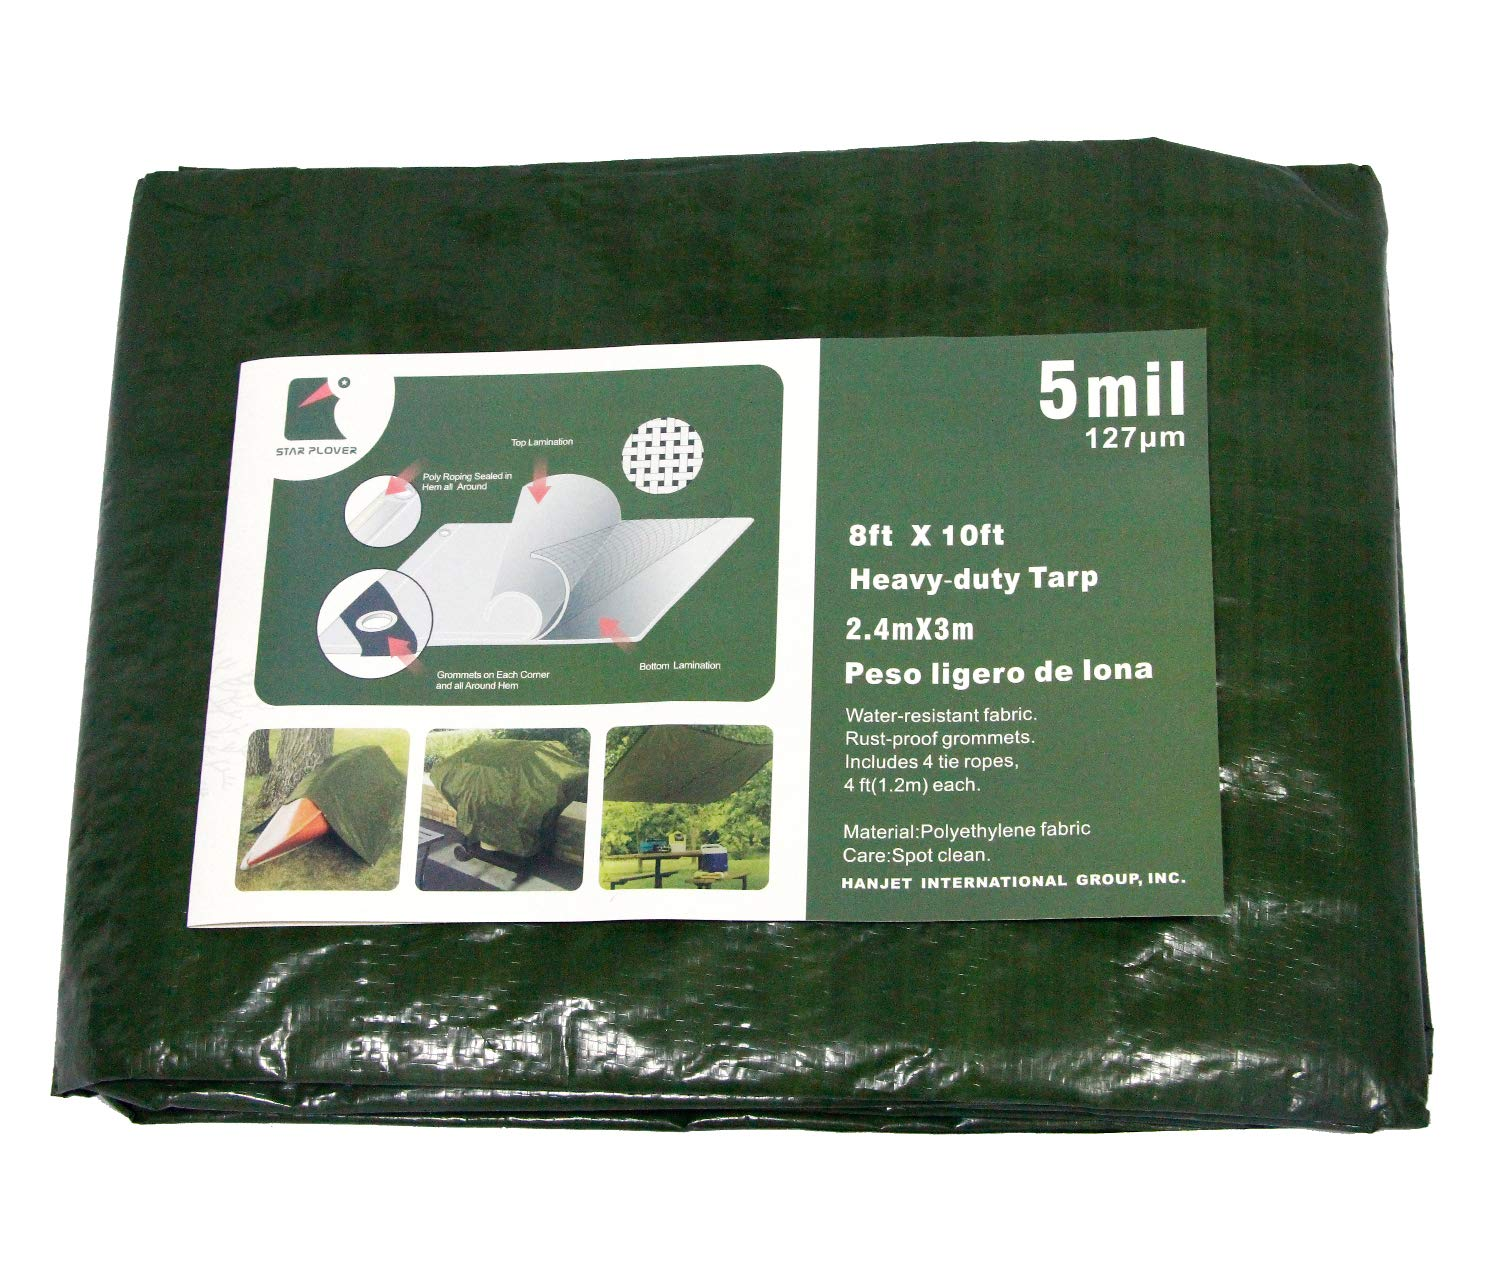 Waterproof Roof Cover Poly Tarps 8X10 Feet Army Green 5 mils Durable PE Tarpaulin for Boat Tent Outdoor Cover by Star Plover by Star Plover